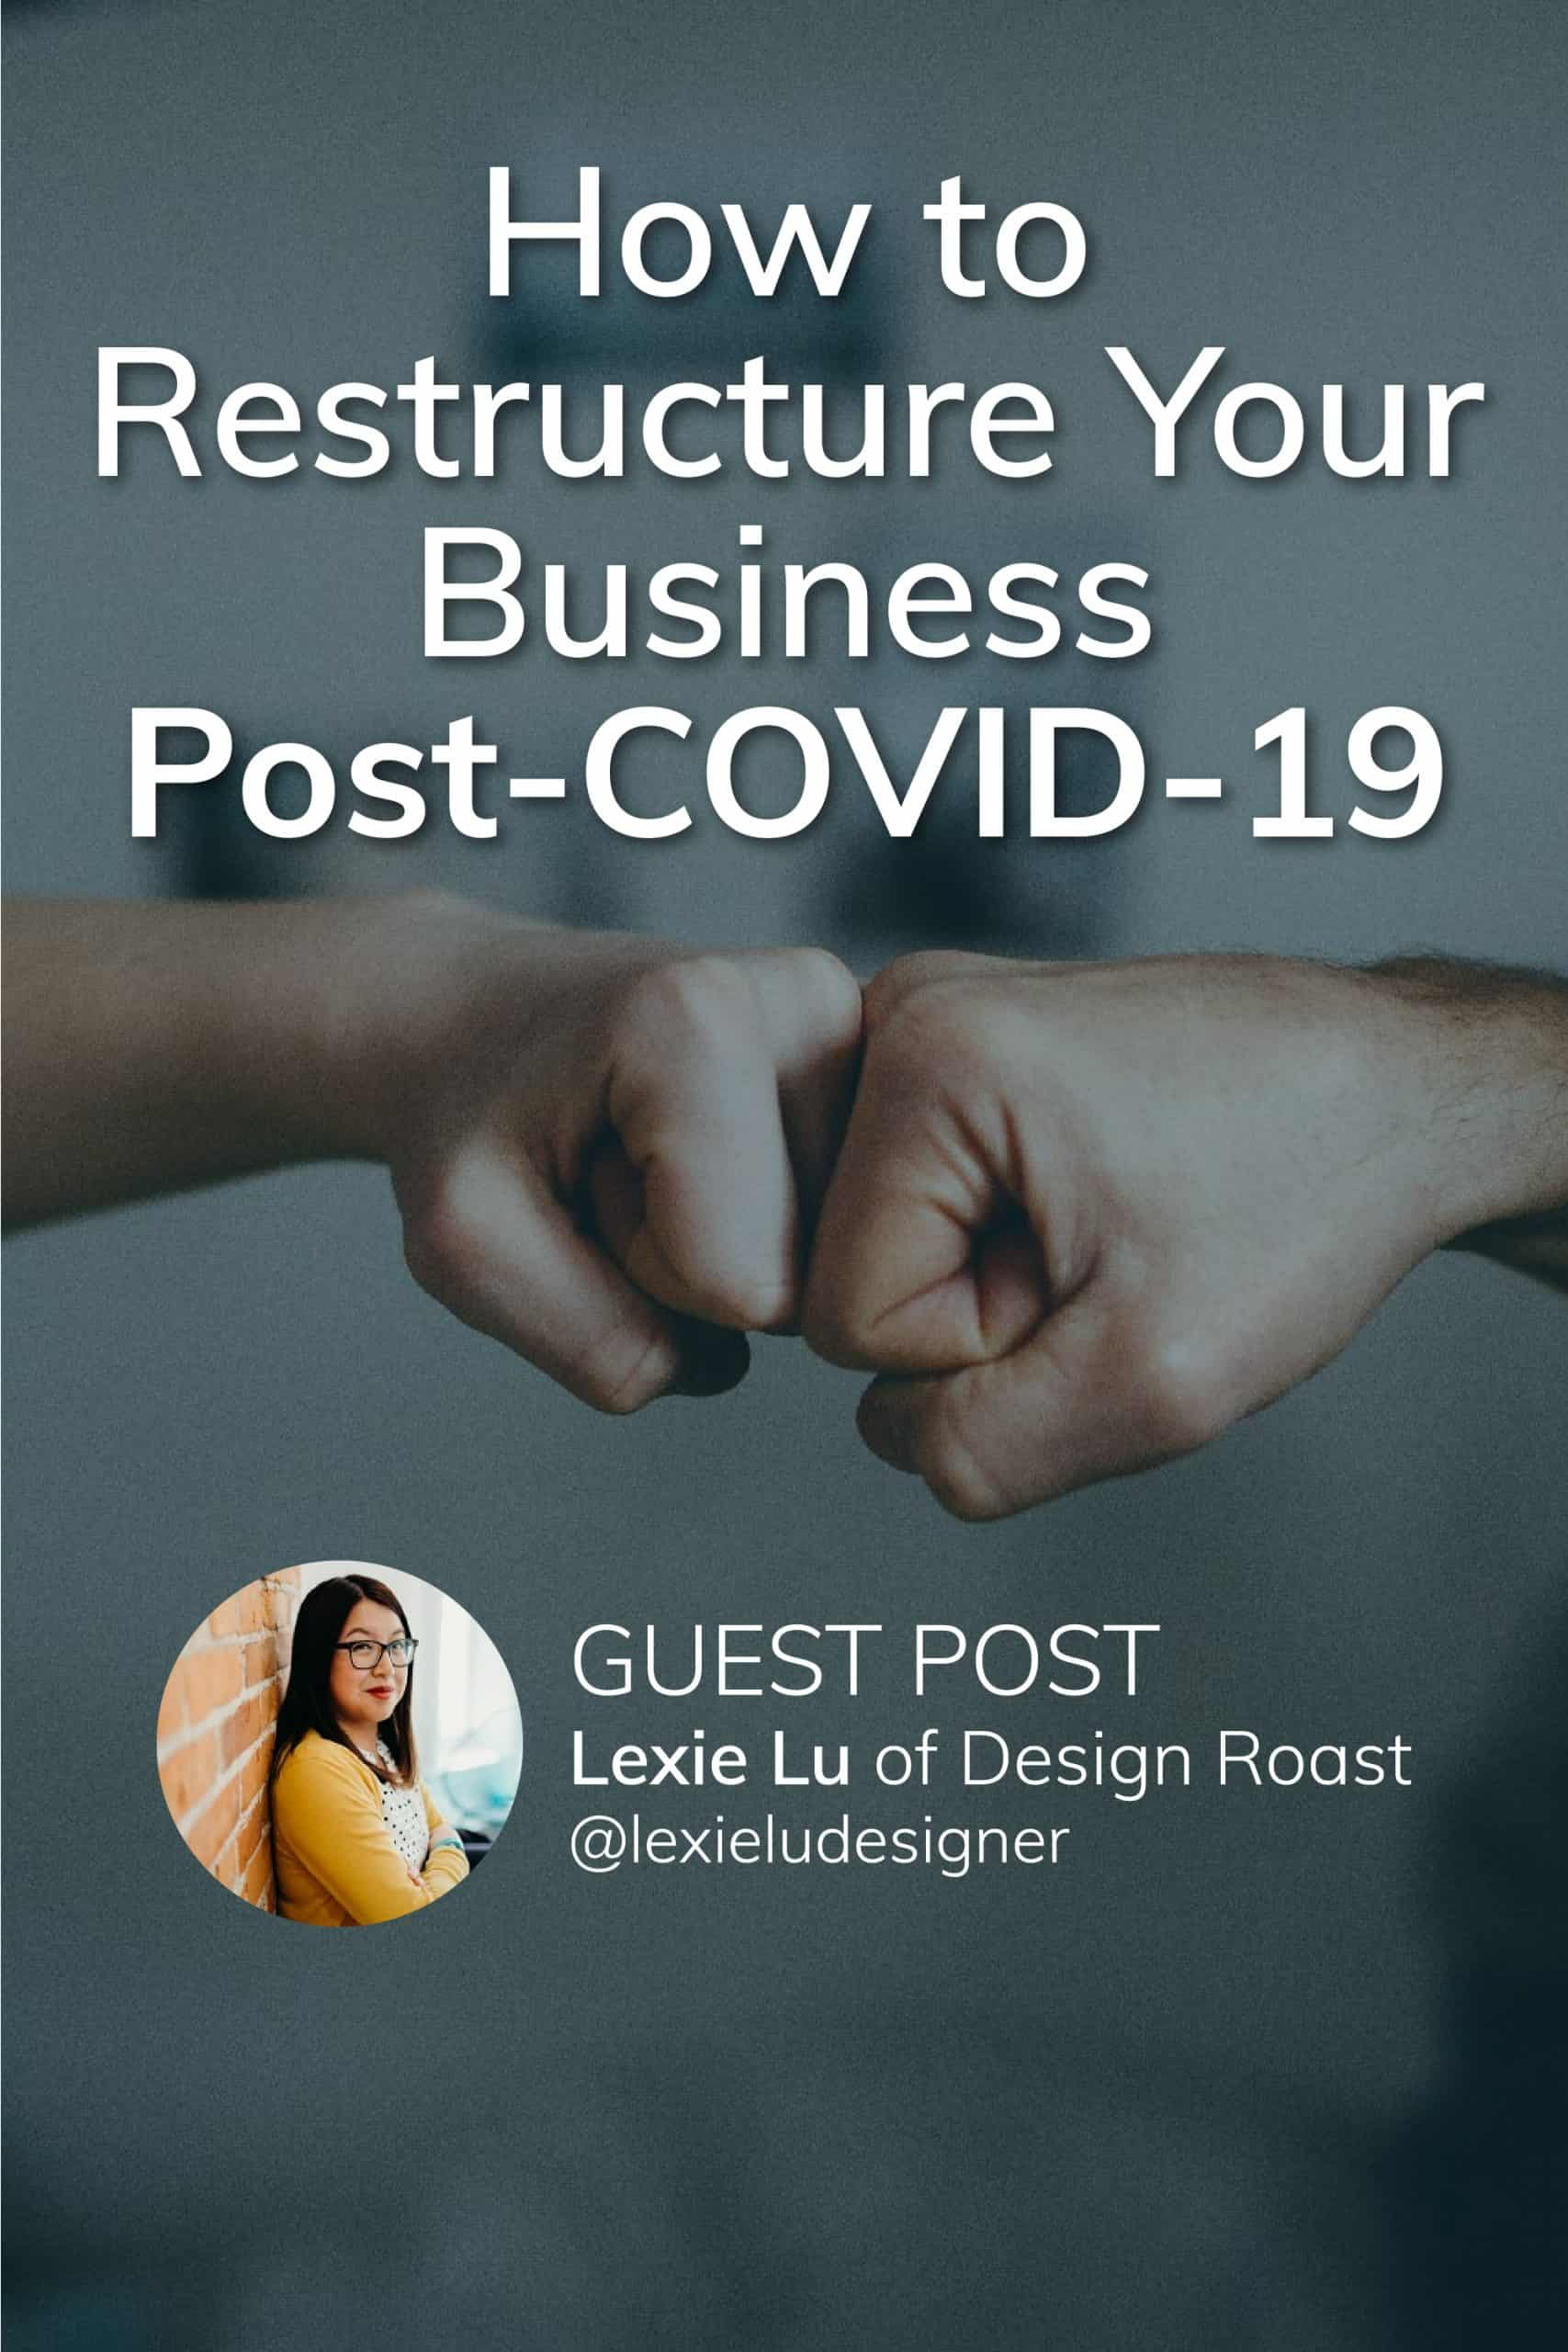 Here's a few pointers on how to restructure your business post-COVID-19. via @scopedesign